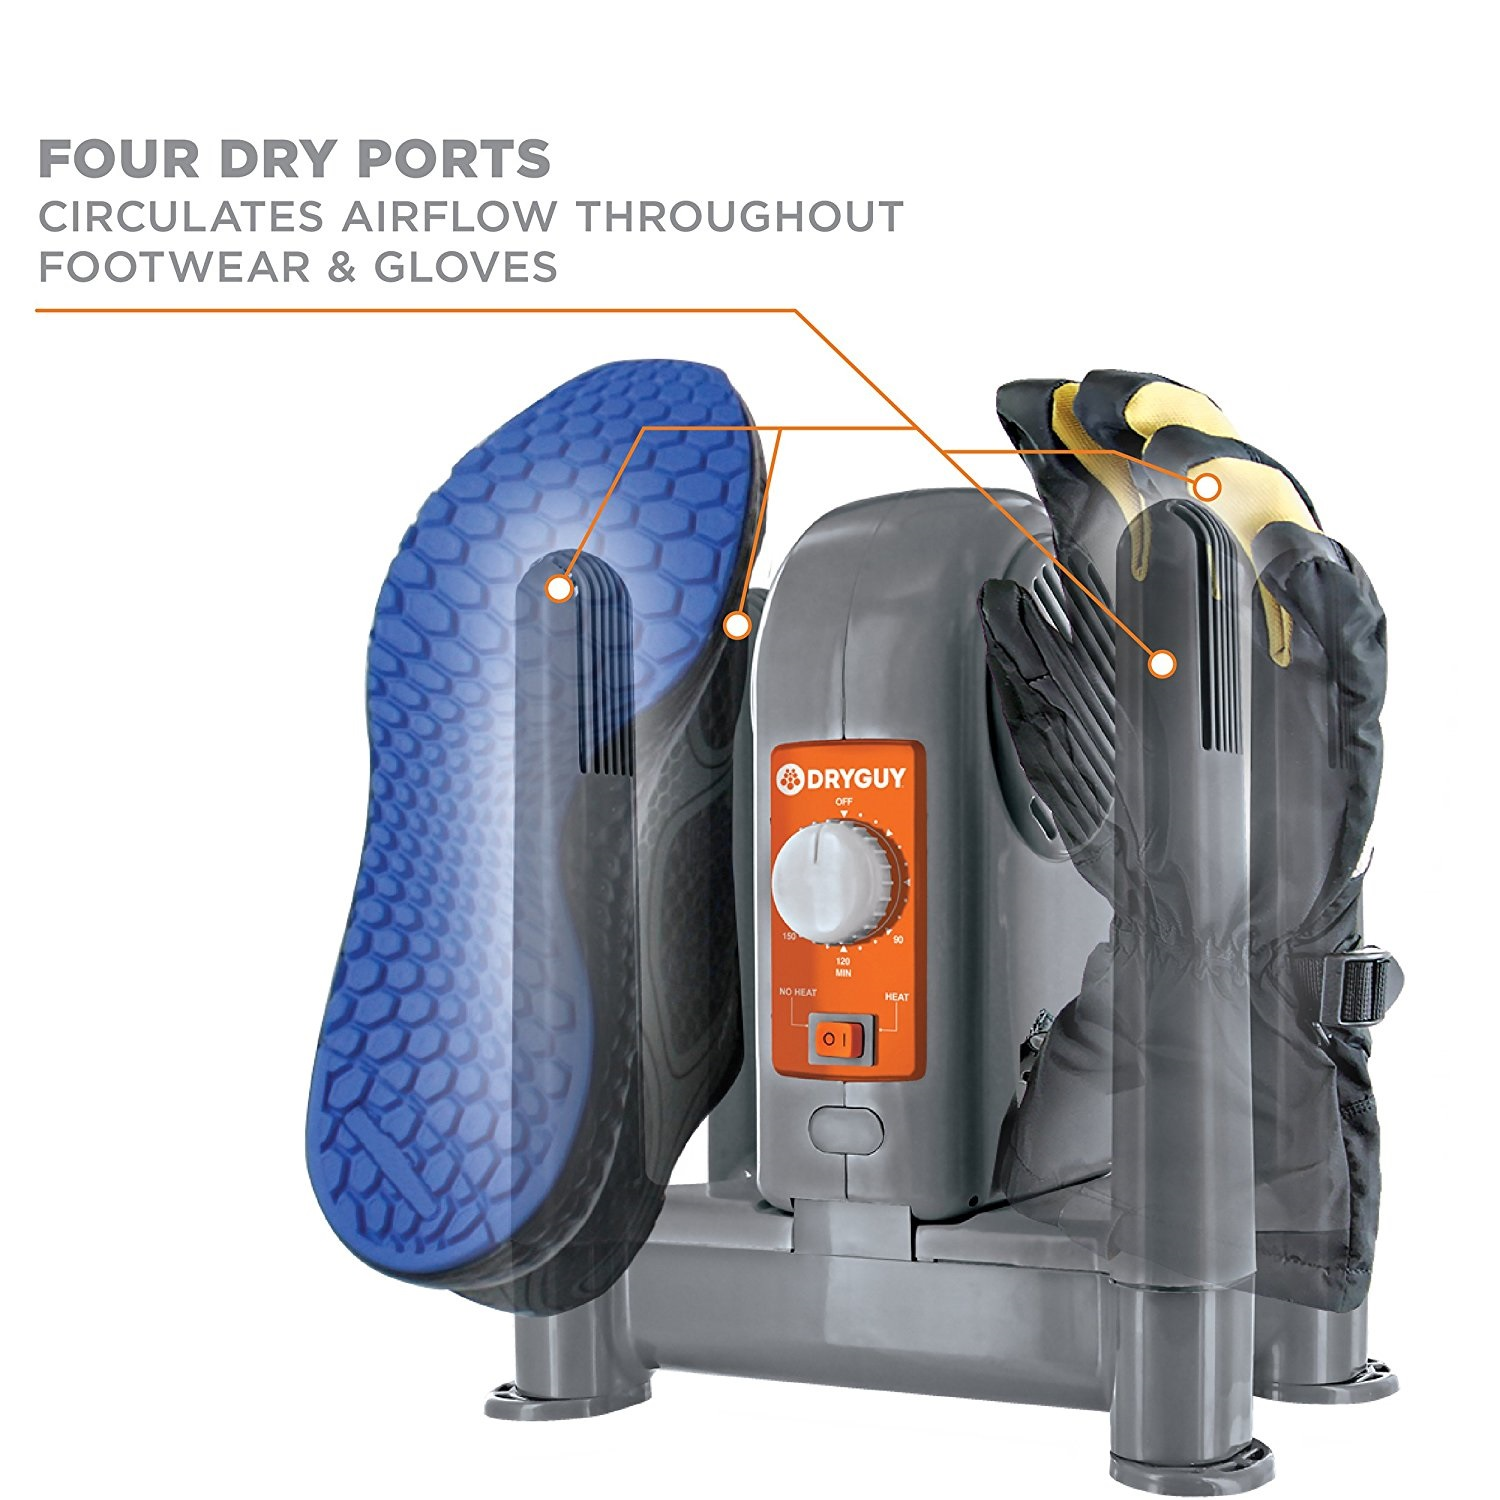 DryGuy Forced Air Boot Dryer